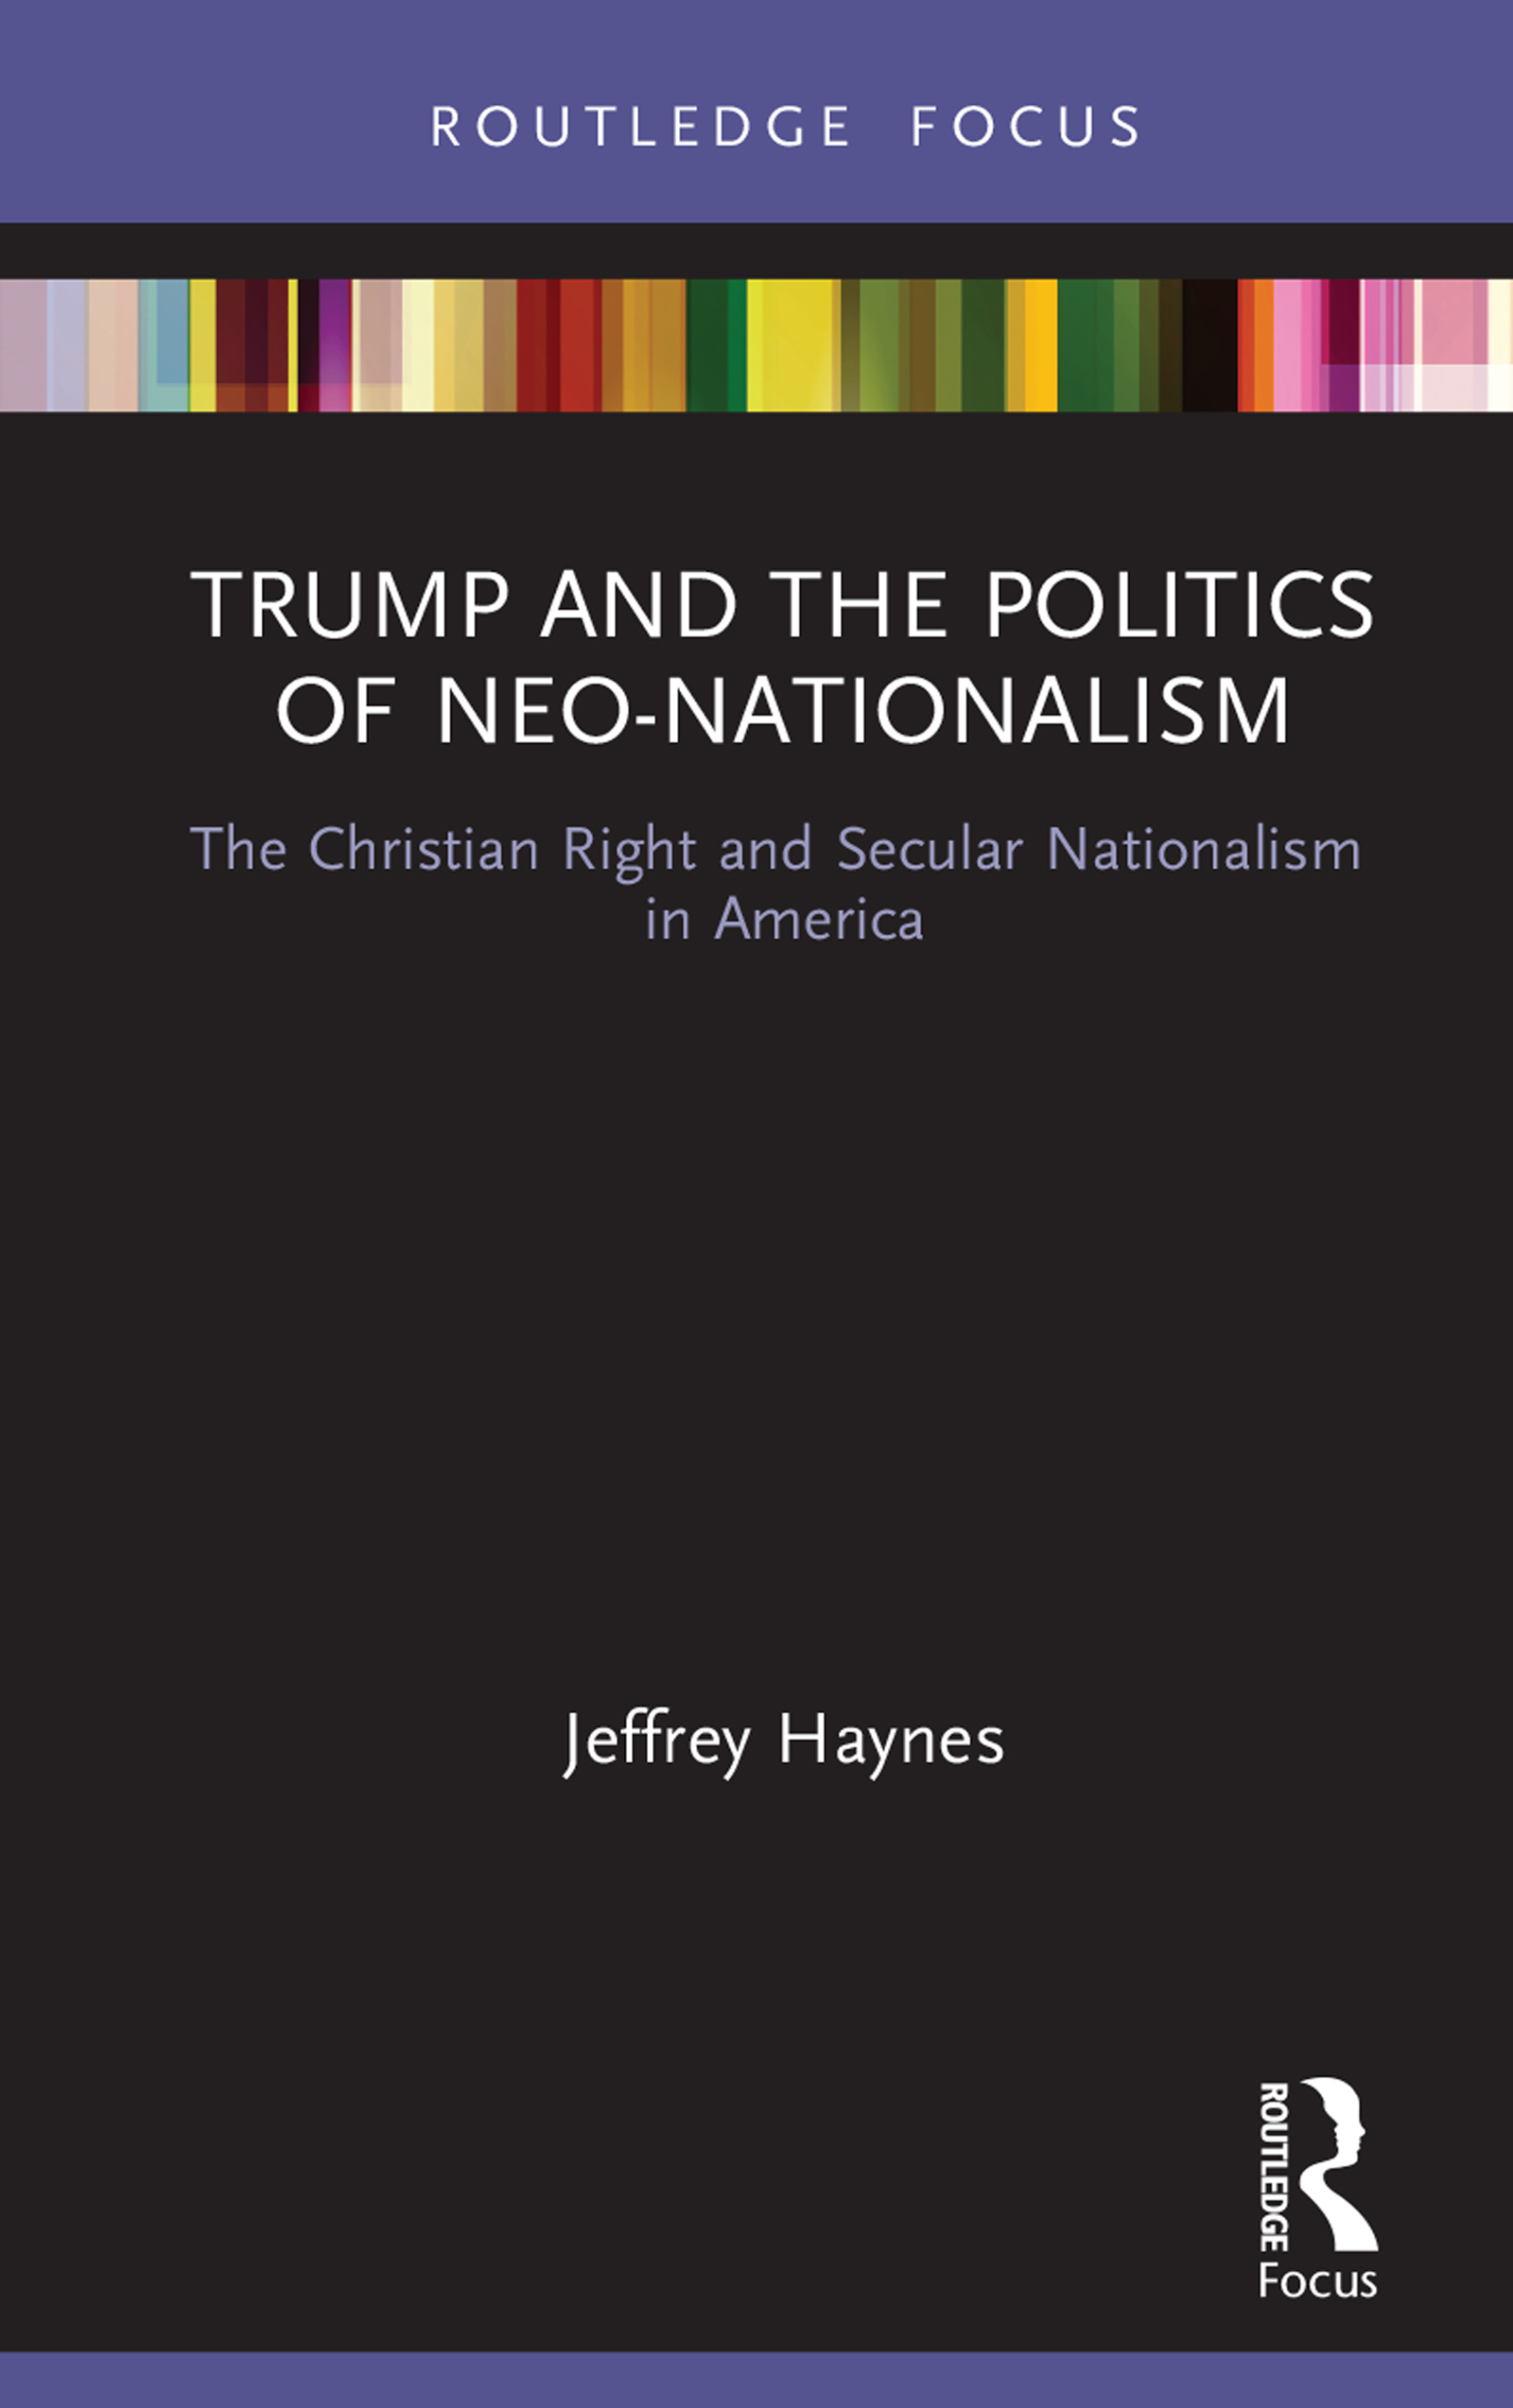 Neo-nationalism and America's international relations